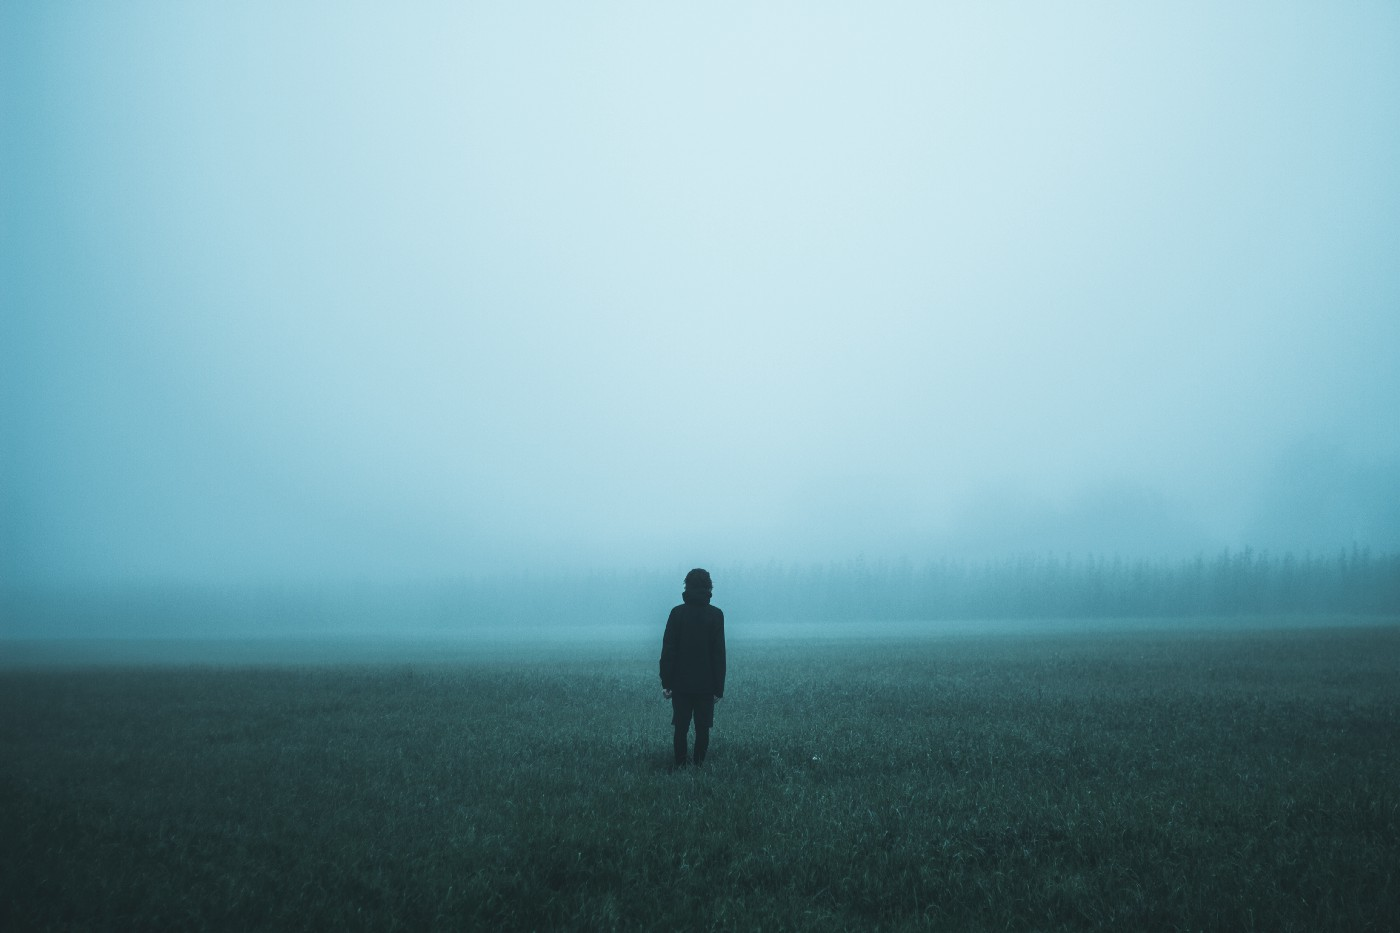 A person standing in a foggy field.